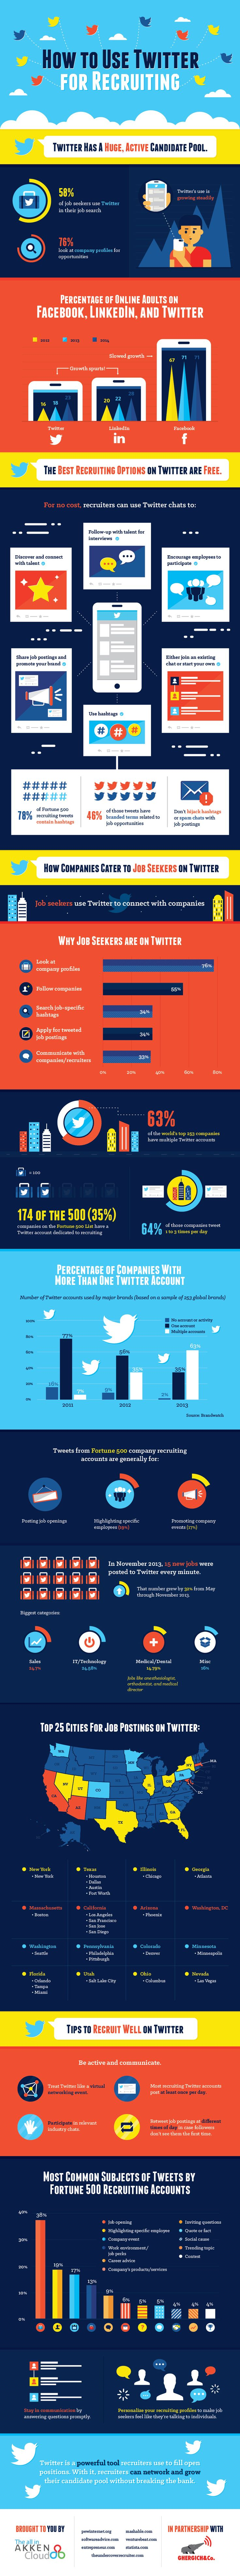 Twitter is a powerful tool recruiters use to fill open positions. With It, recruiters can network and grow their candidate pool without breaking the bank. And this infographic shows, how.